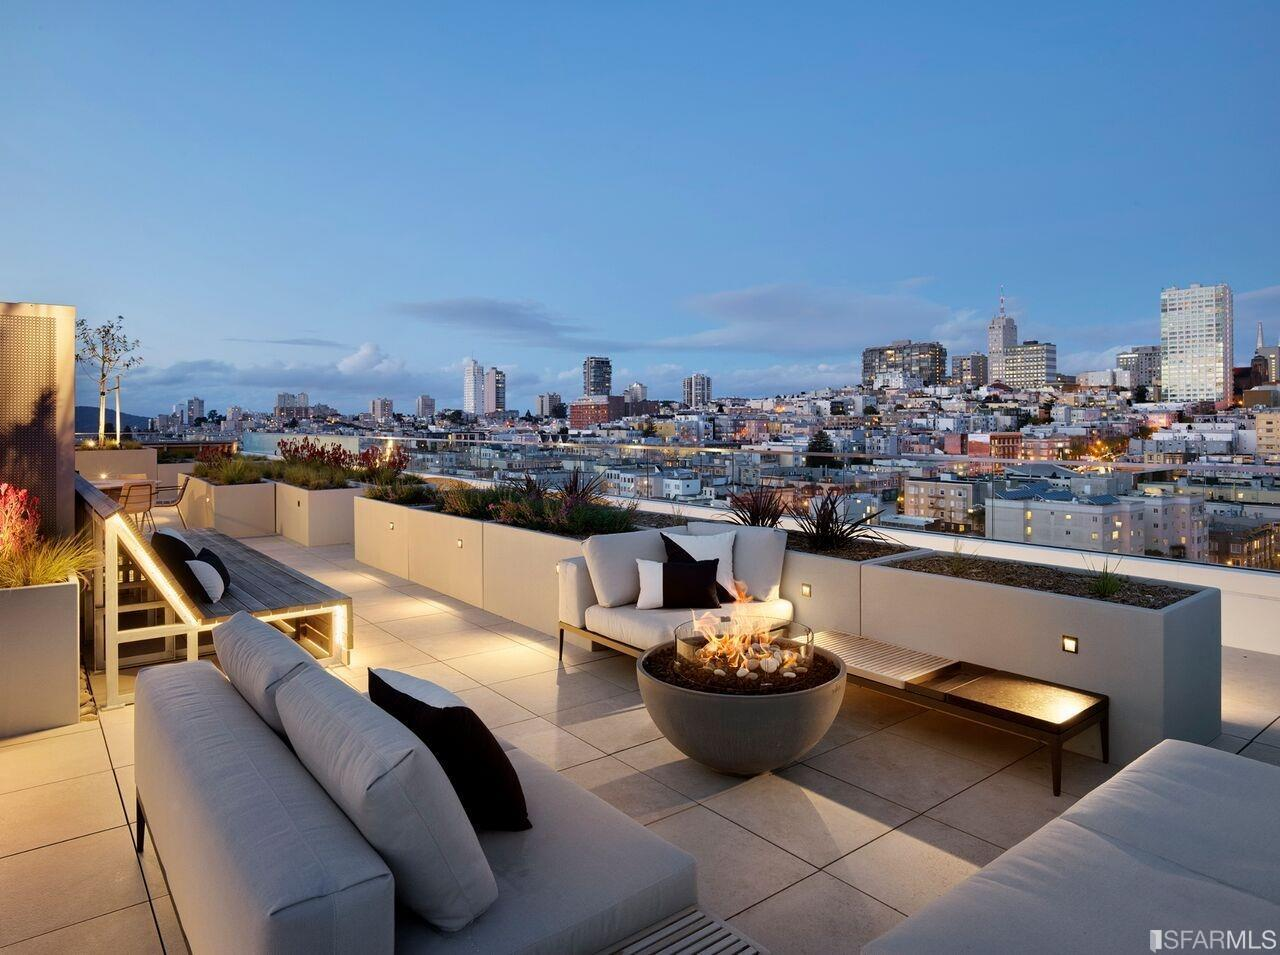 1545 pine st. No. 601 - Van Ness / Civic Center$810,000